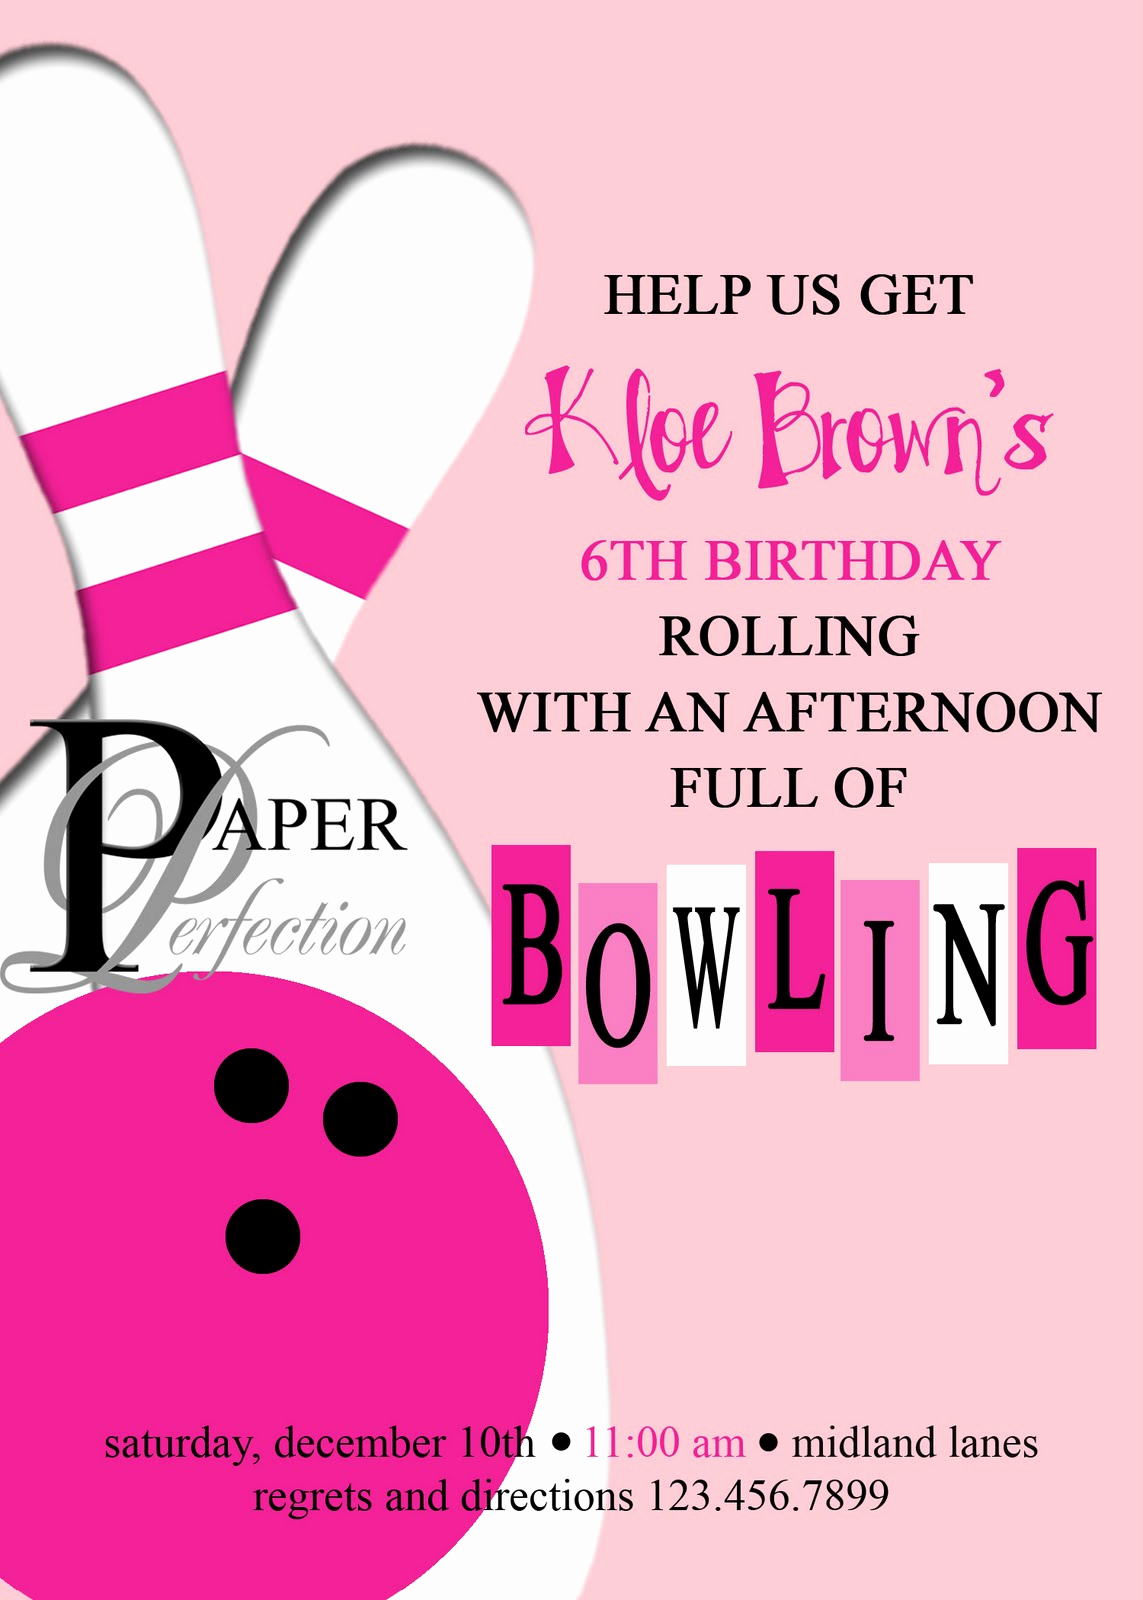 Bowling Party Invitation Templates Free Fresh Paper Perfection Pink Bowling Party Invite and Printables